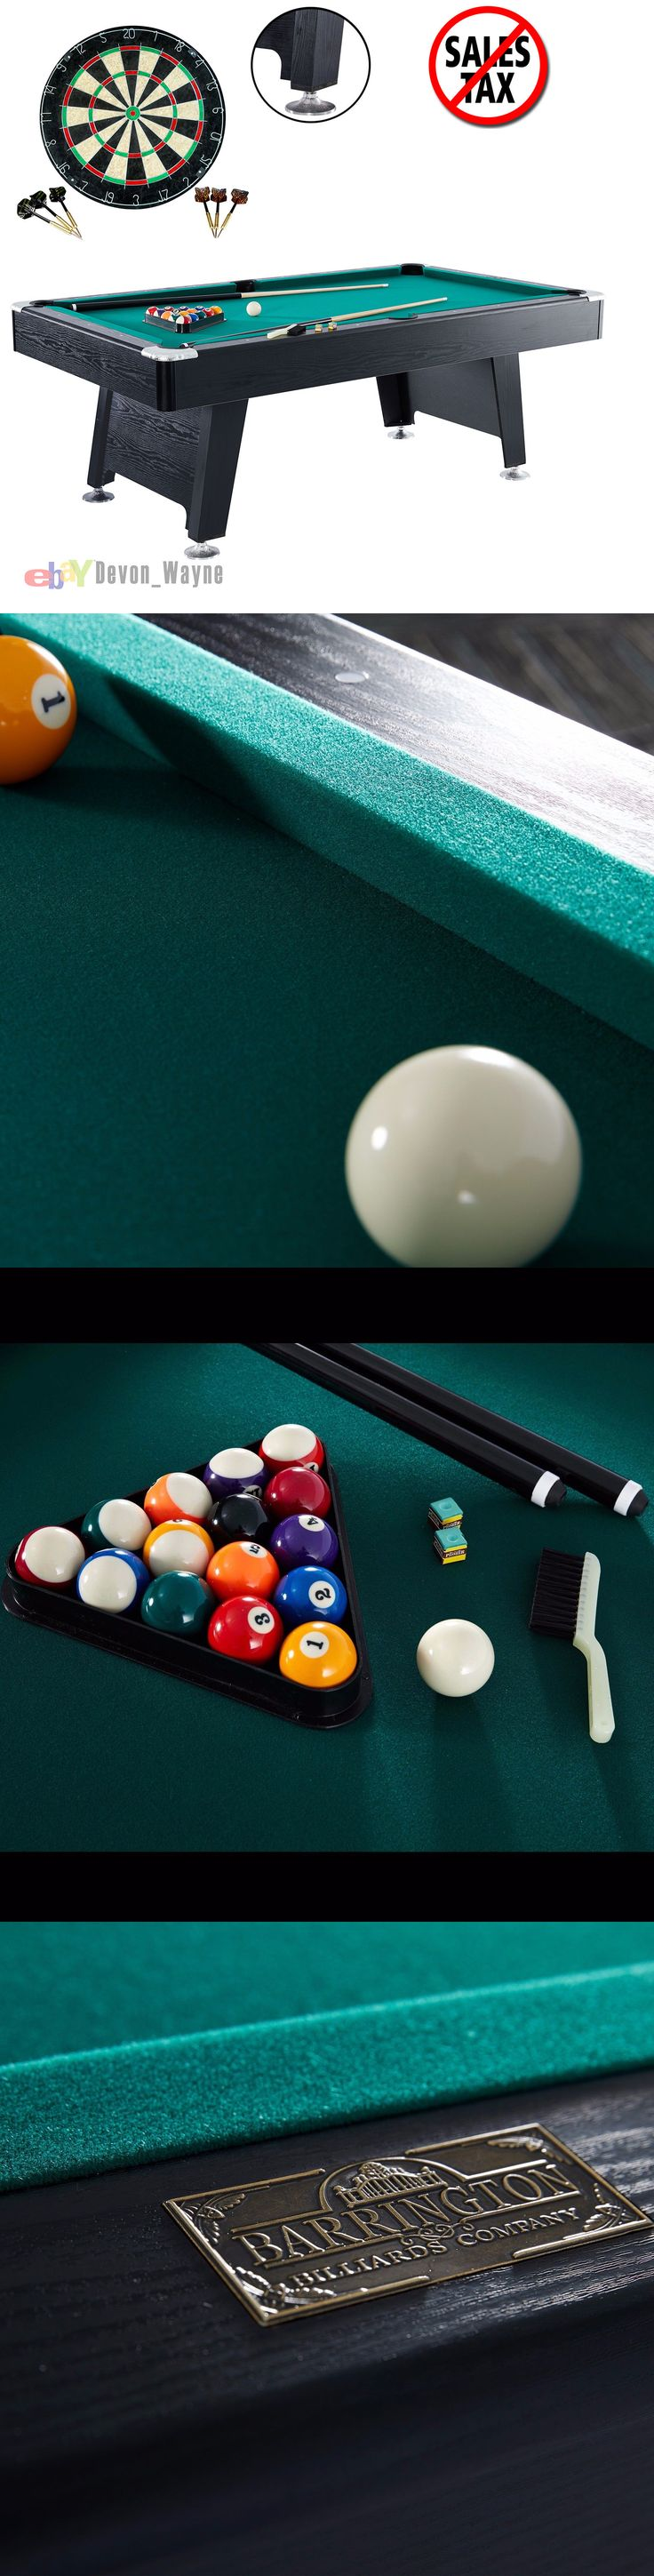 Pool table legs accessories for sale - Tables 21213 Arcade Pool Table Billiard Accessories With Dart Board Sports Game Bundle Patio